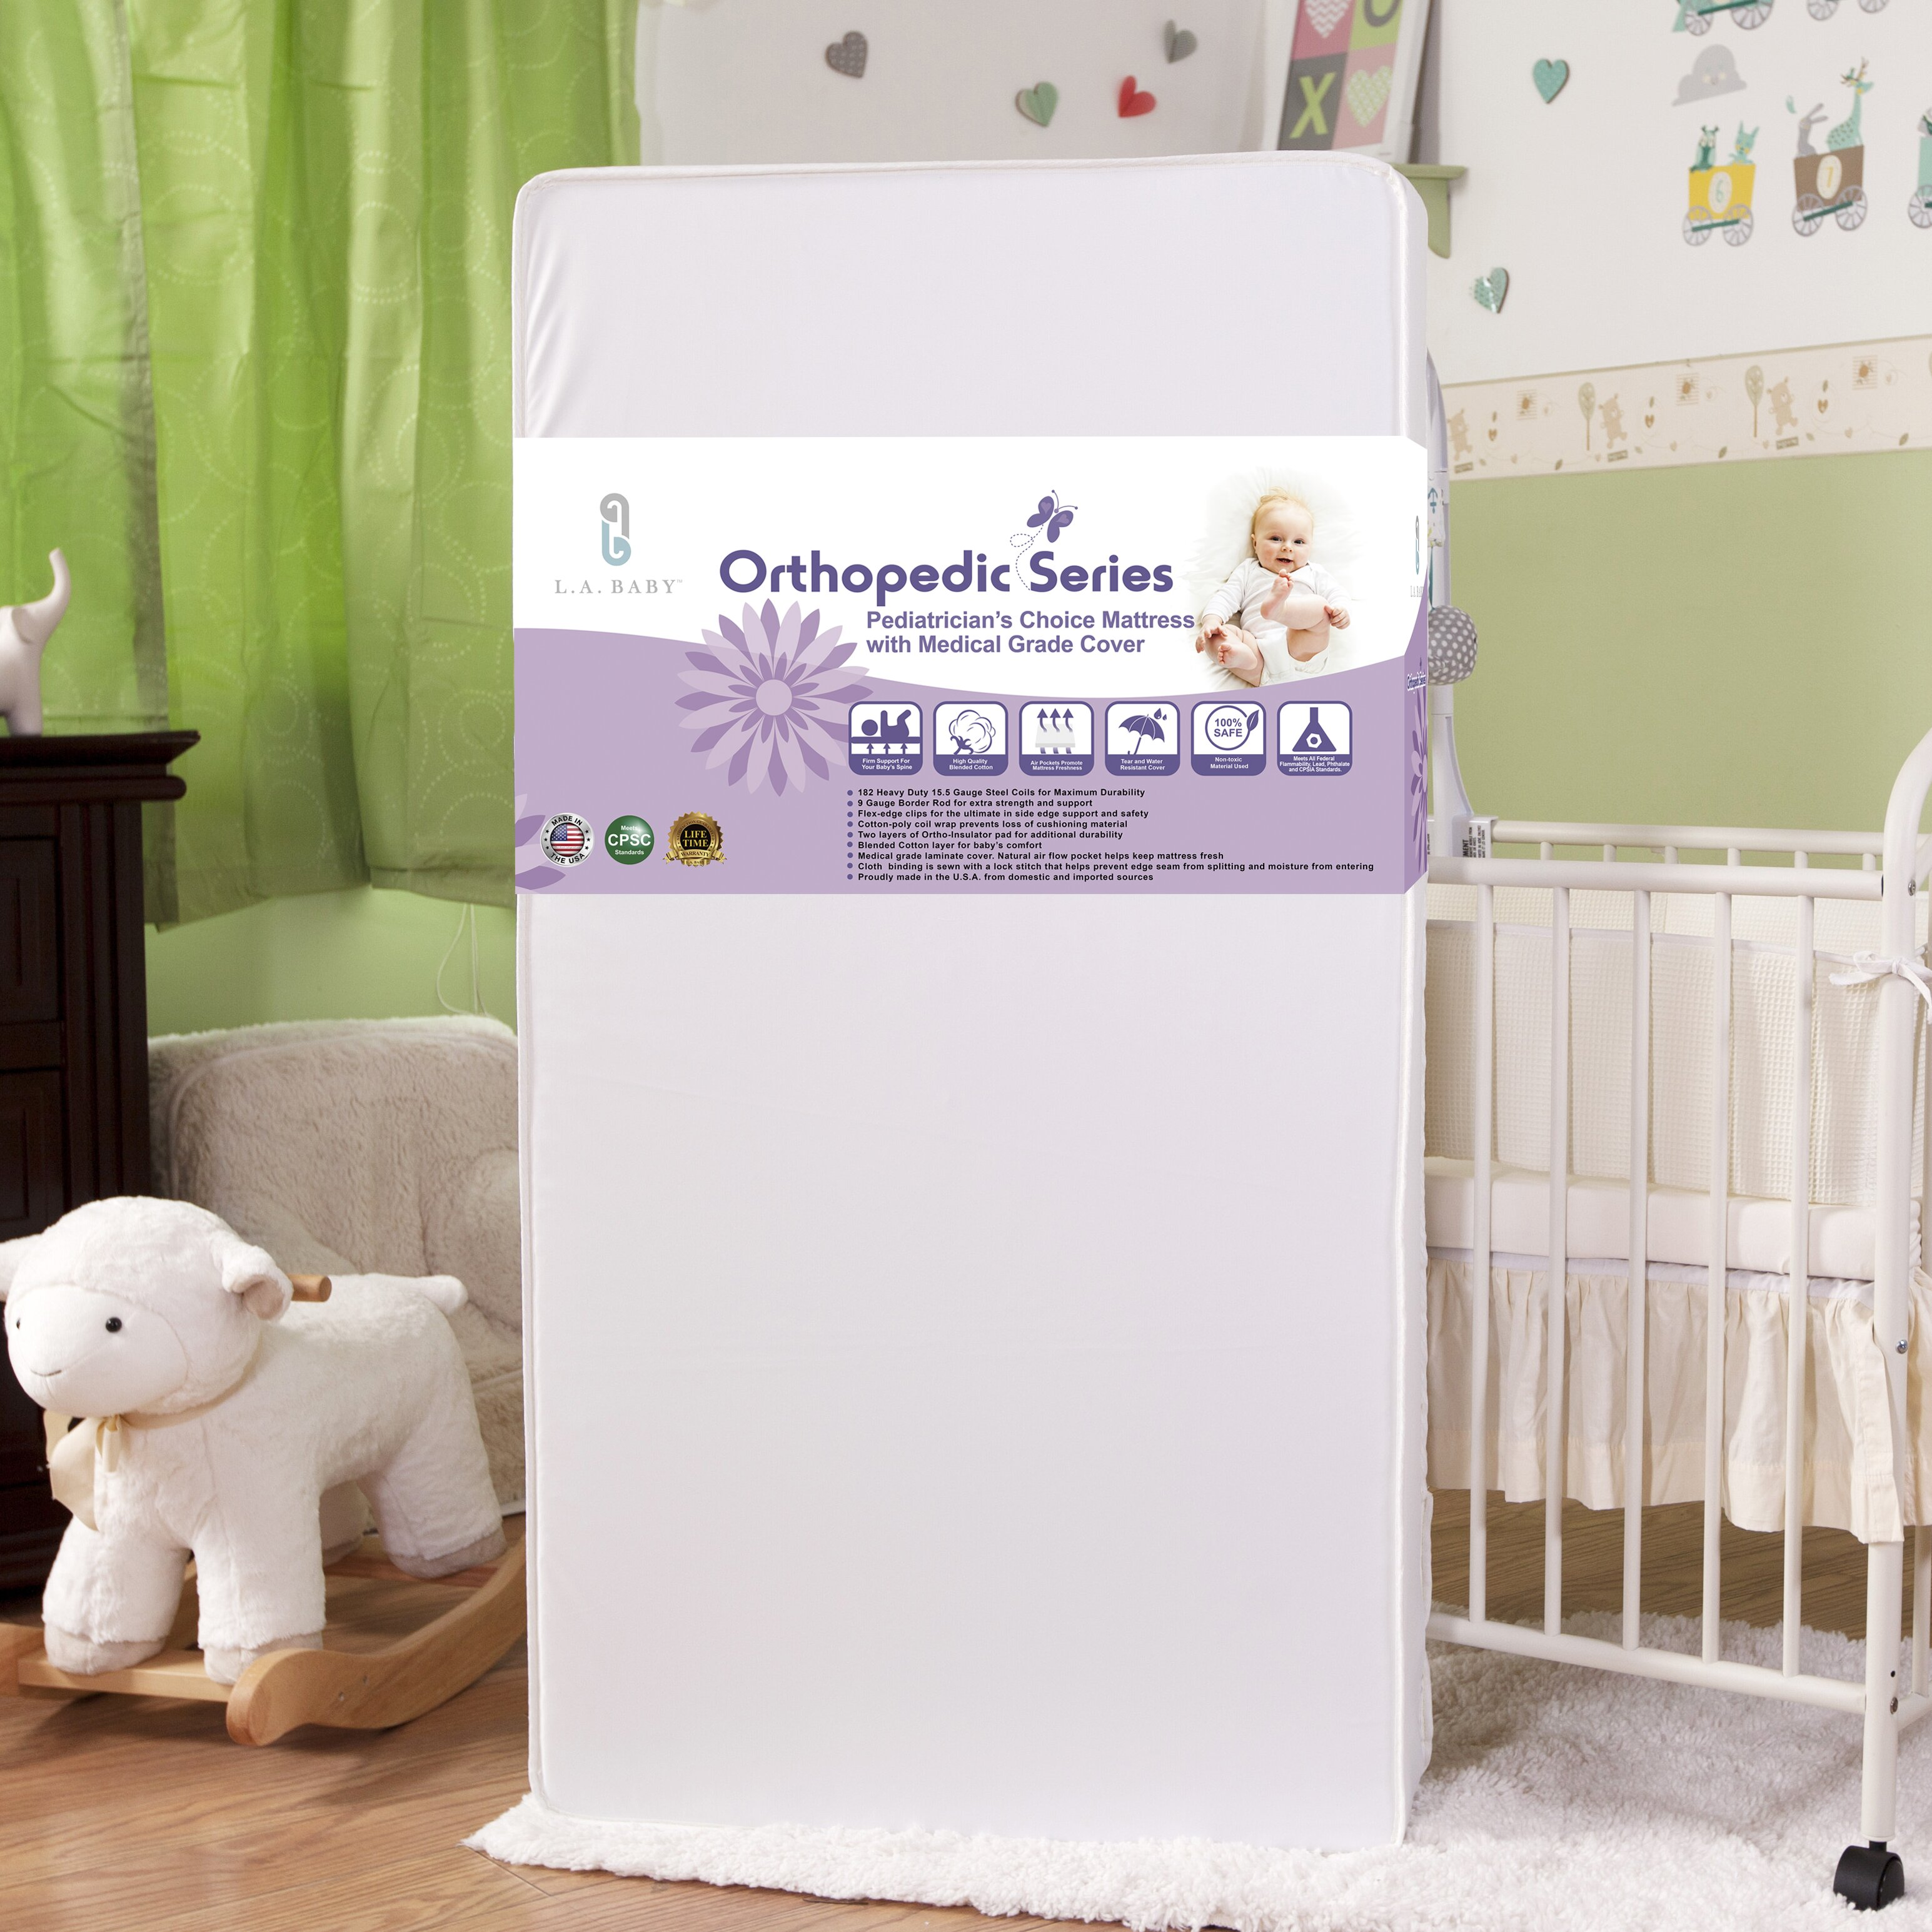 Crib mattress for babies - L A Baby Pediatrician S Choice Crib Mattress With Medical Grade Cover